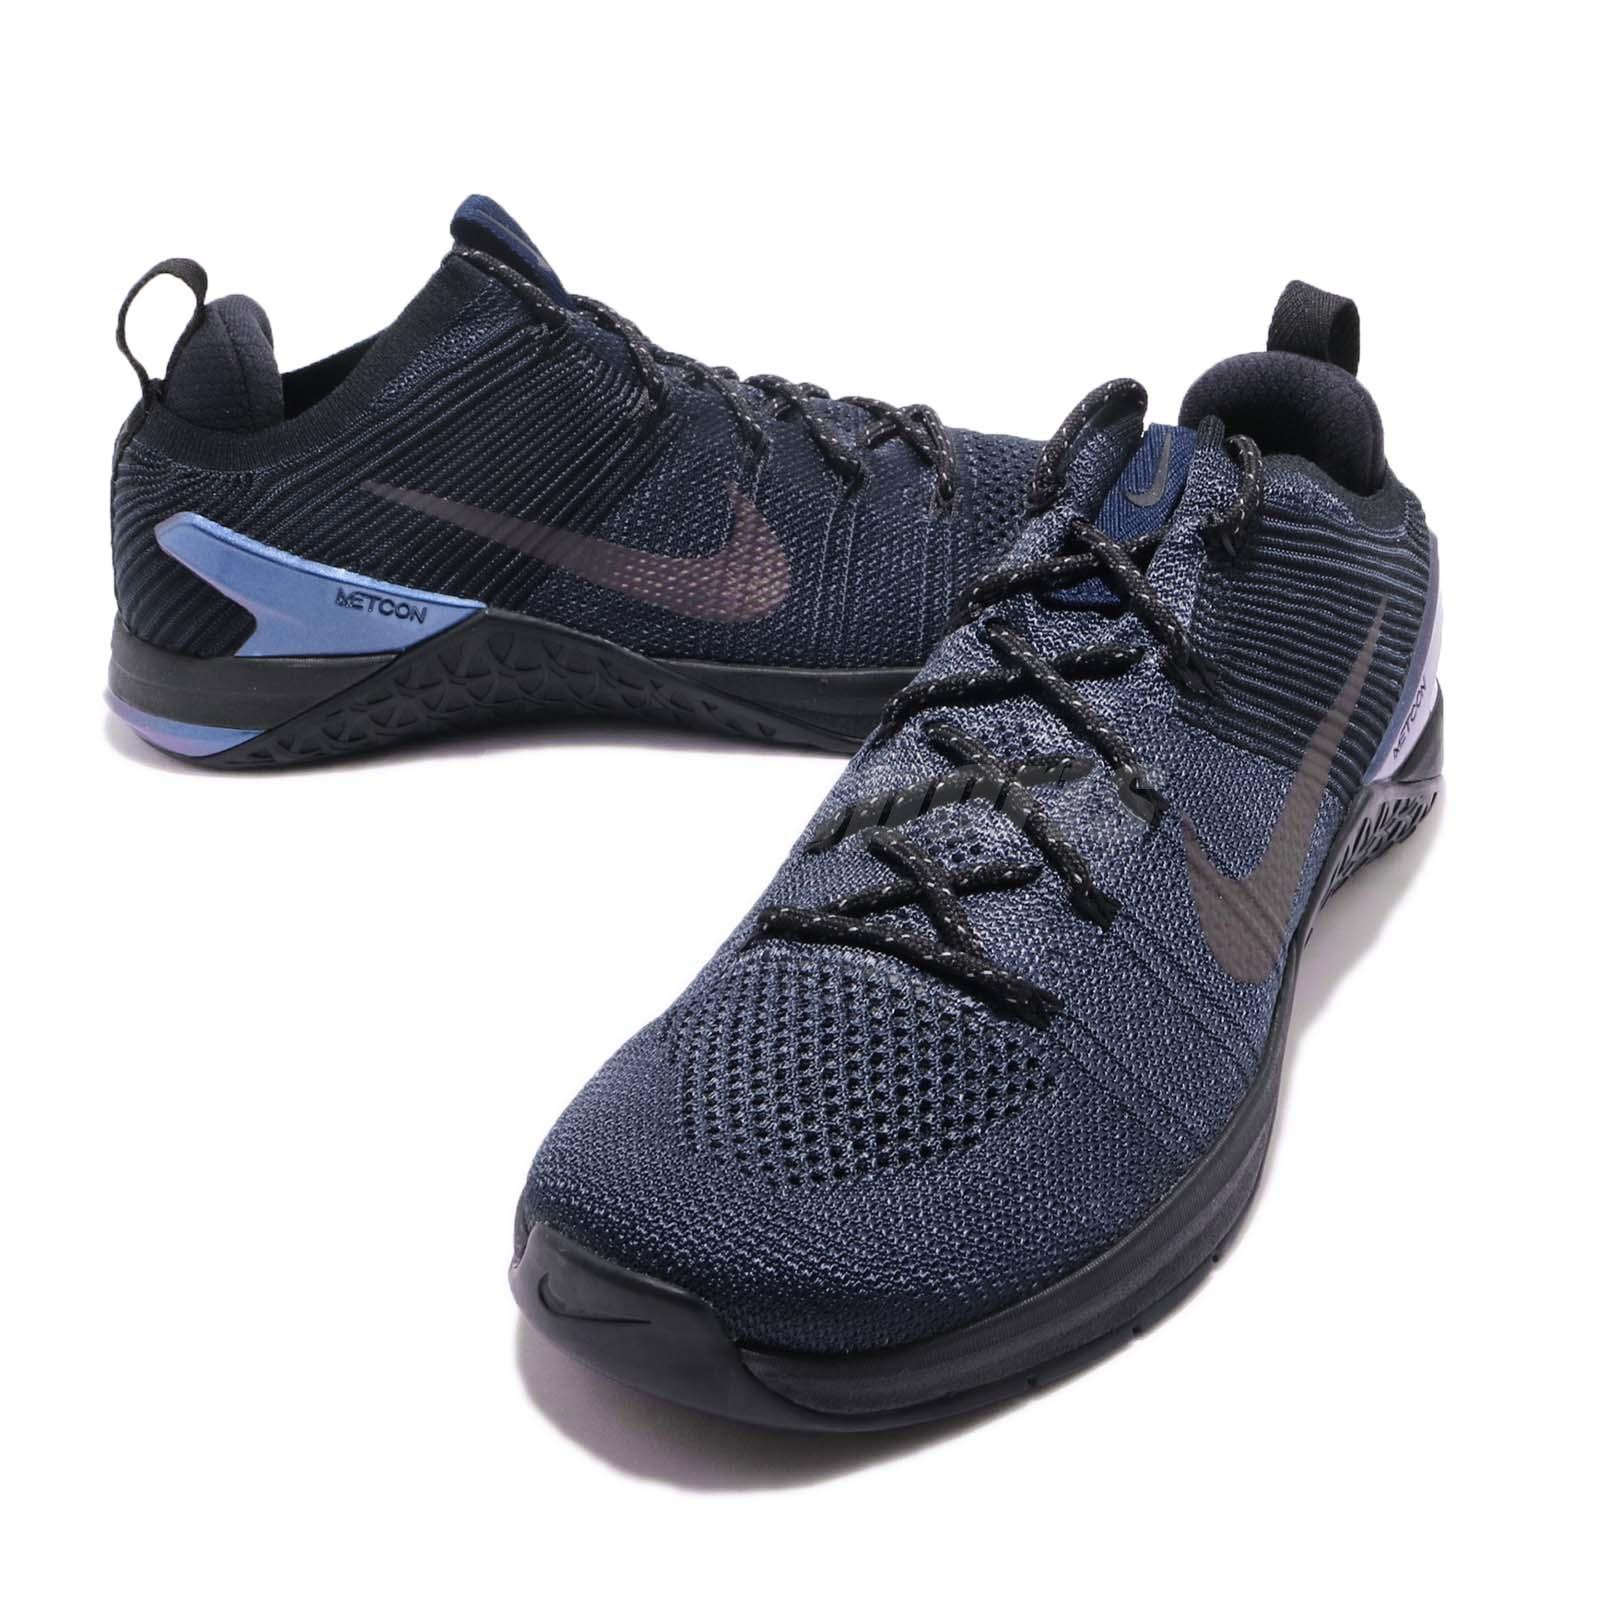 42d9fd70c57 Nike Metcon DSX Flyknit 2 AMP FK College Navy Blue Training Shoes ...